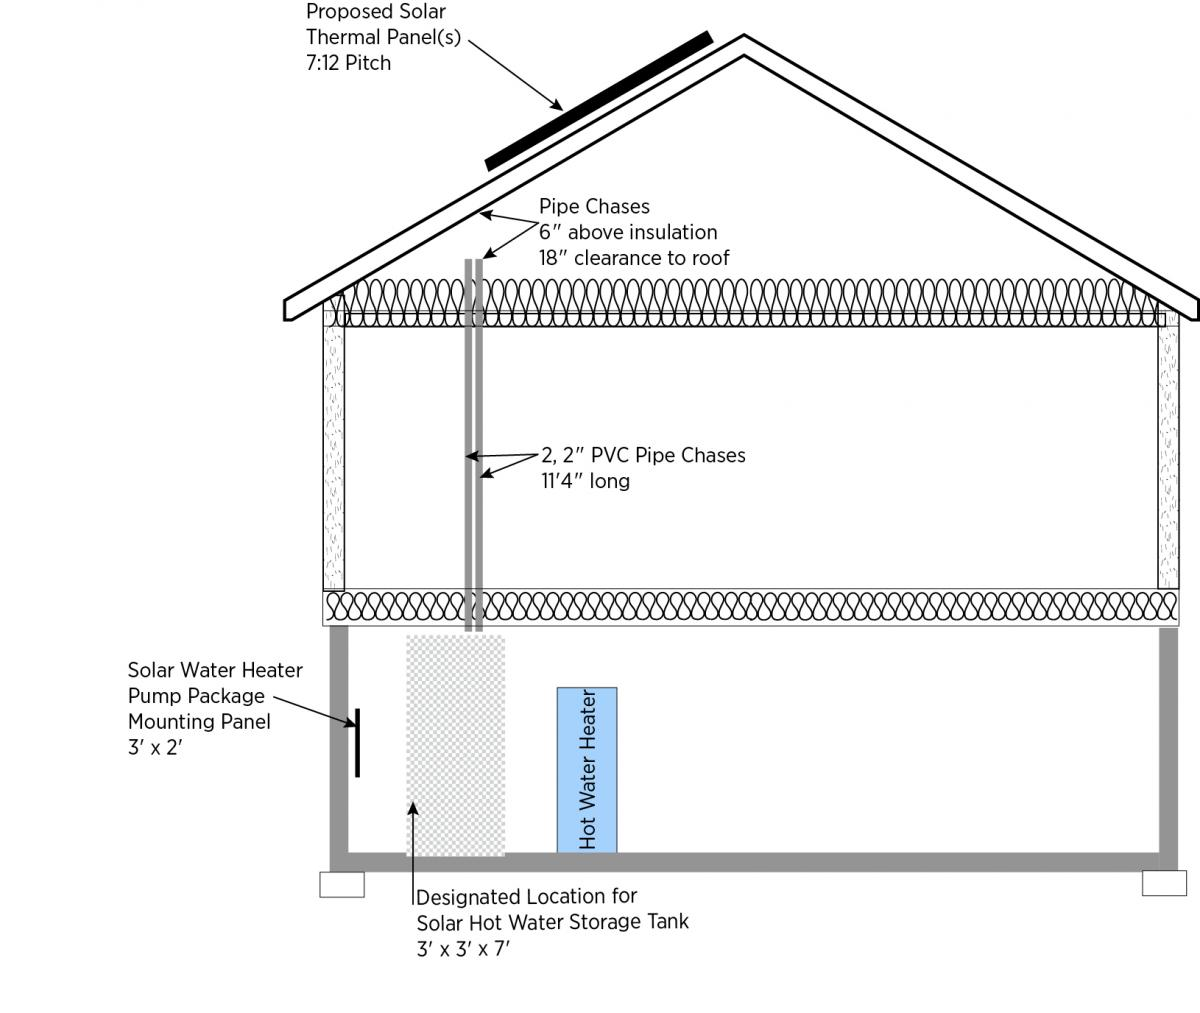 Architectural Drawings For Solar Thermal Systems